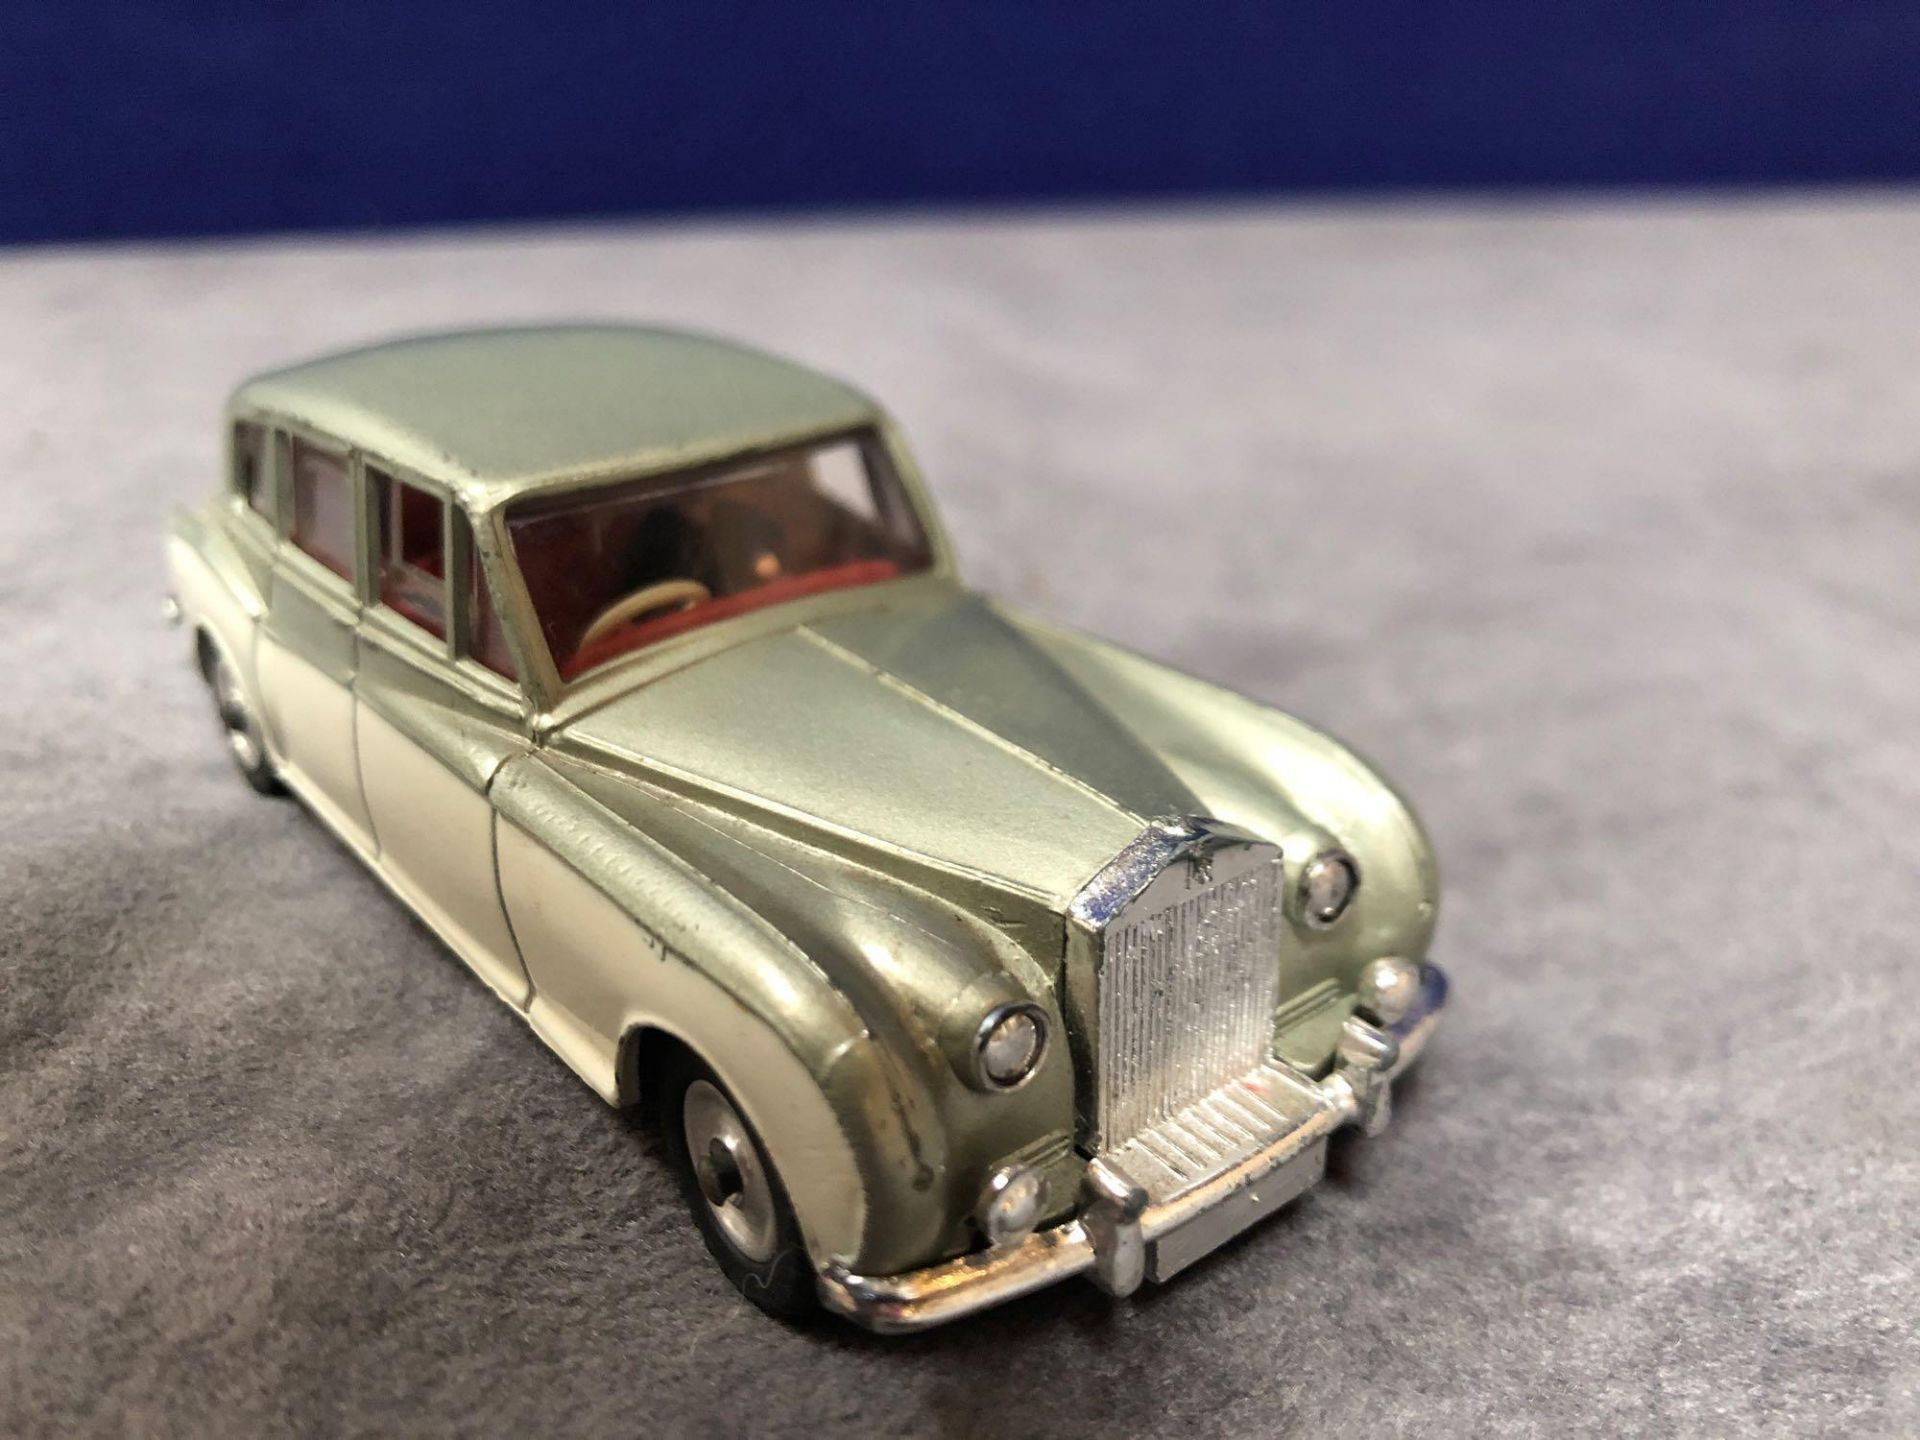 Dinky #198 Rolls Royce Phantom V Green/Cream - Concave Hubs, 1962 - 1969 Unboxed excellent model - Image 2 of 4